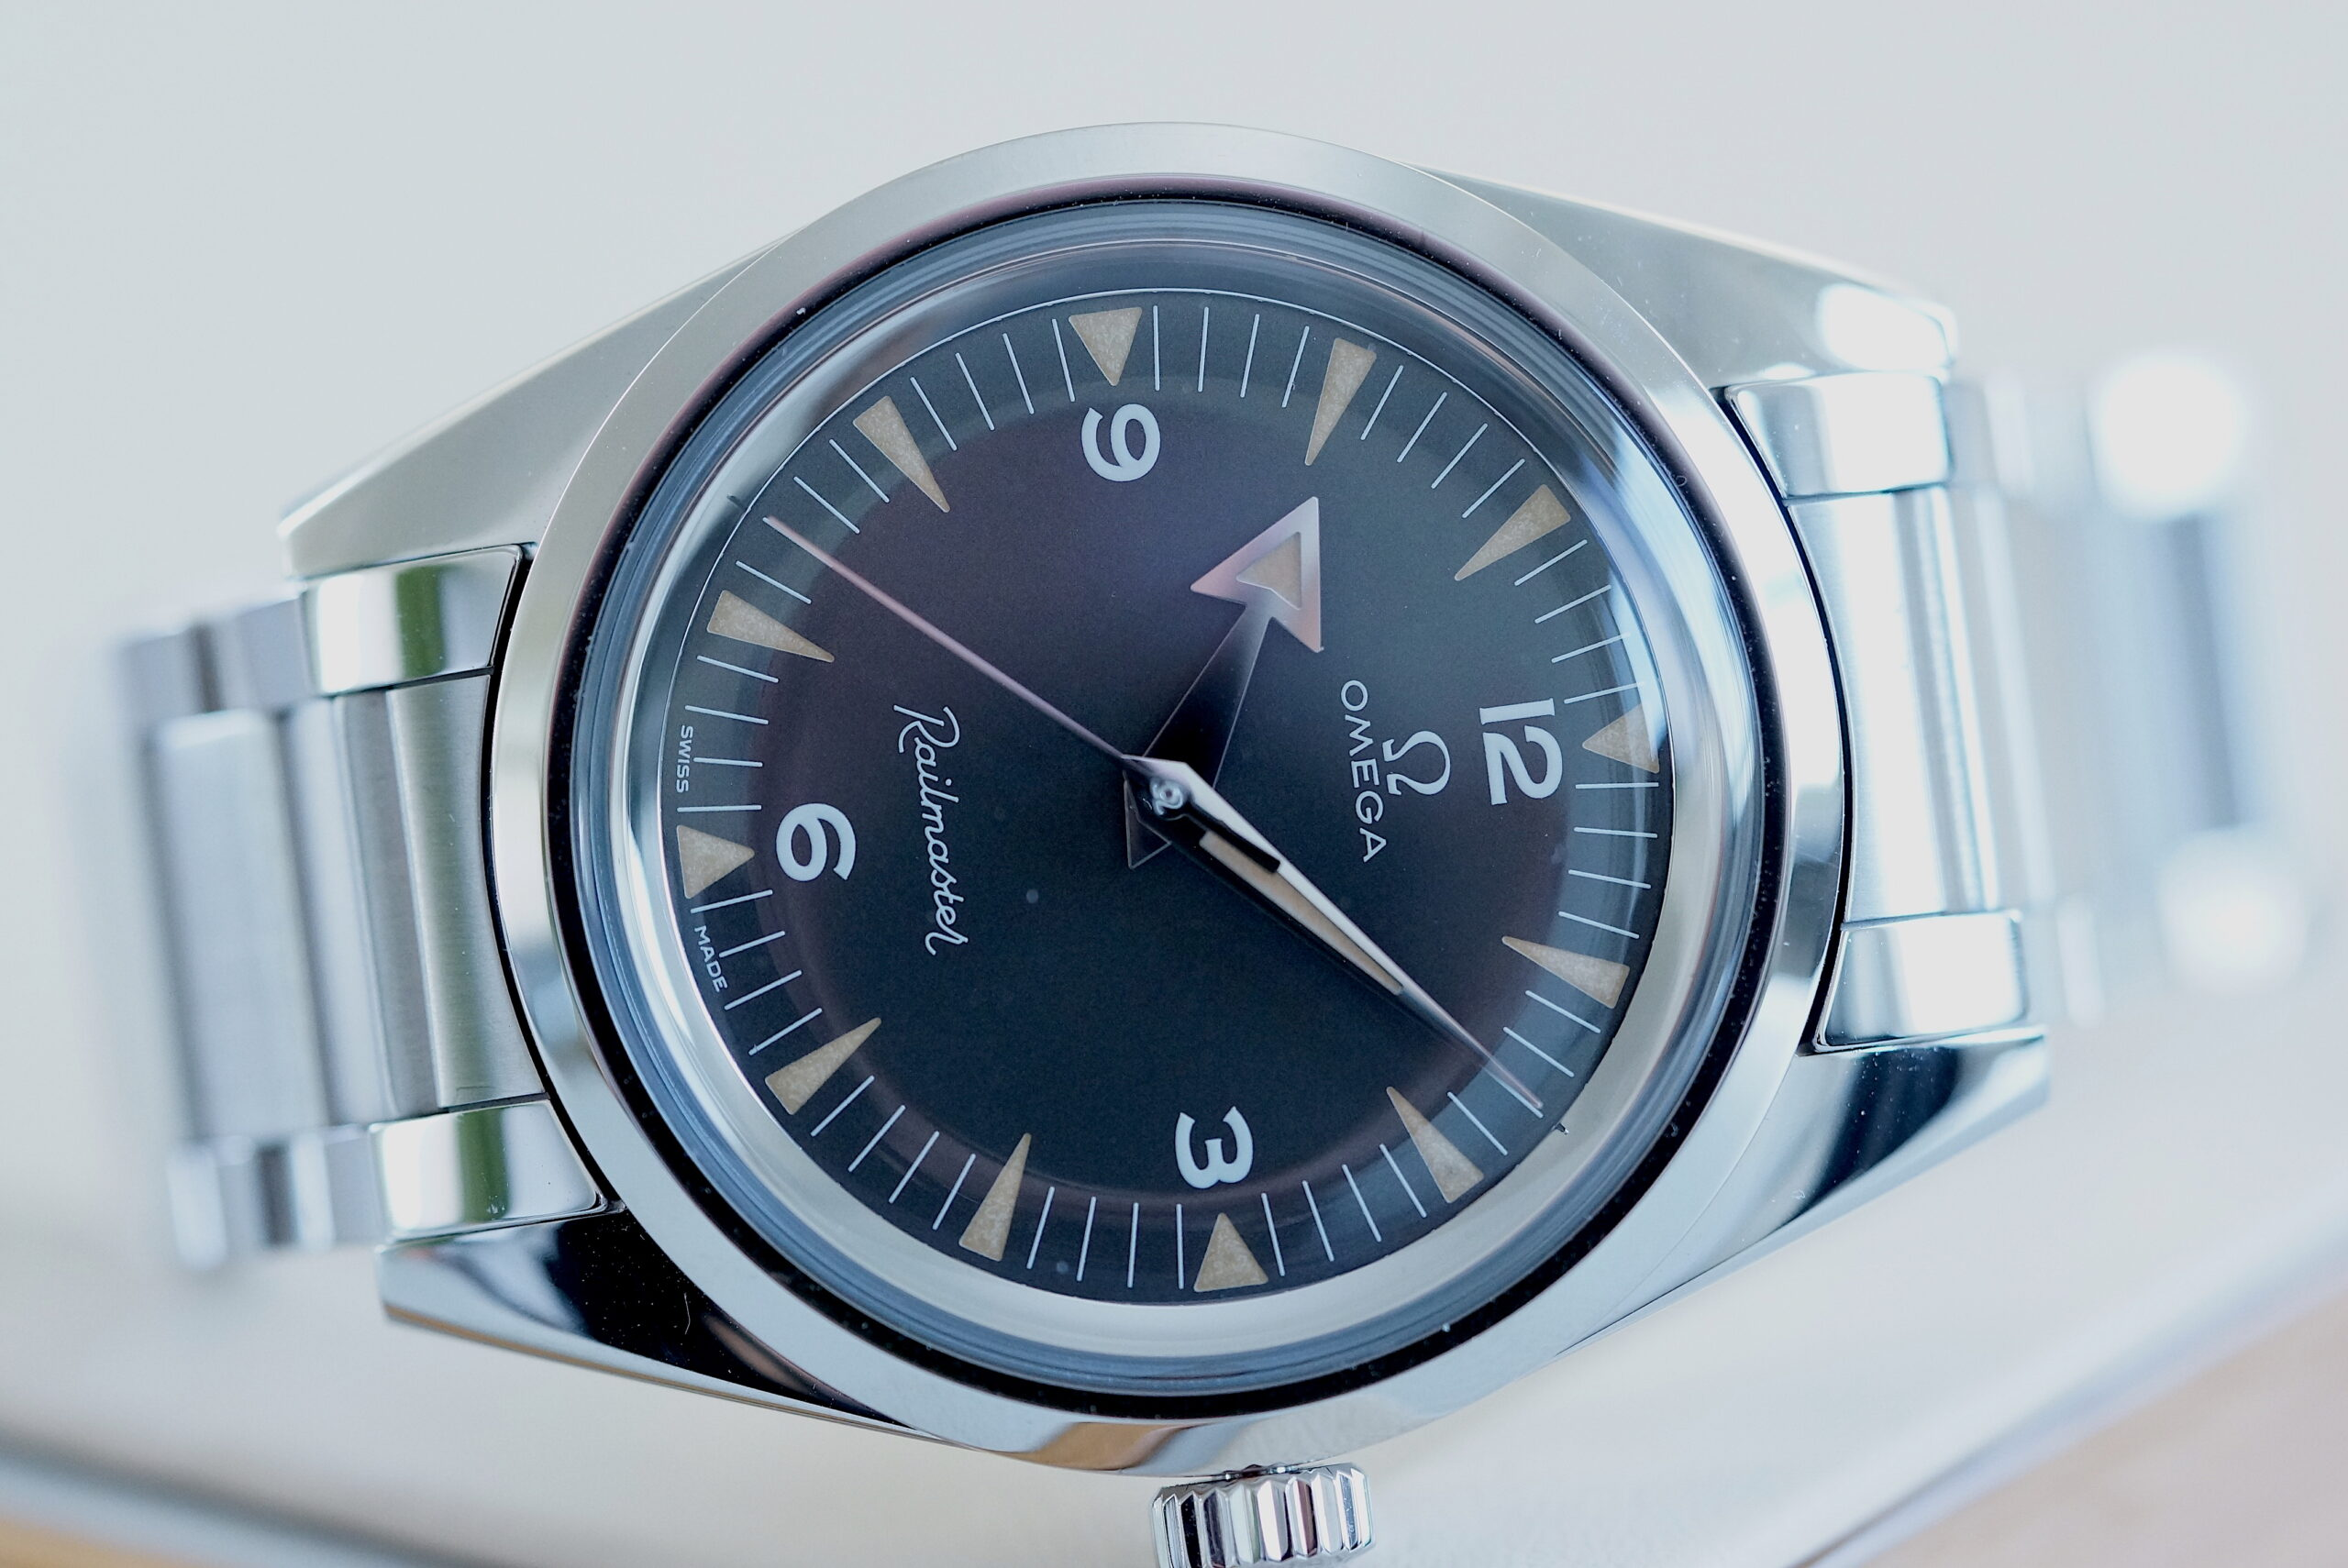 Omega 1957 Trilogy RAILMASTER Master Co-Axial Chronometer